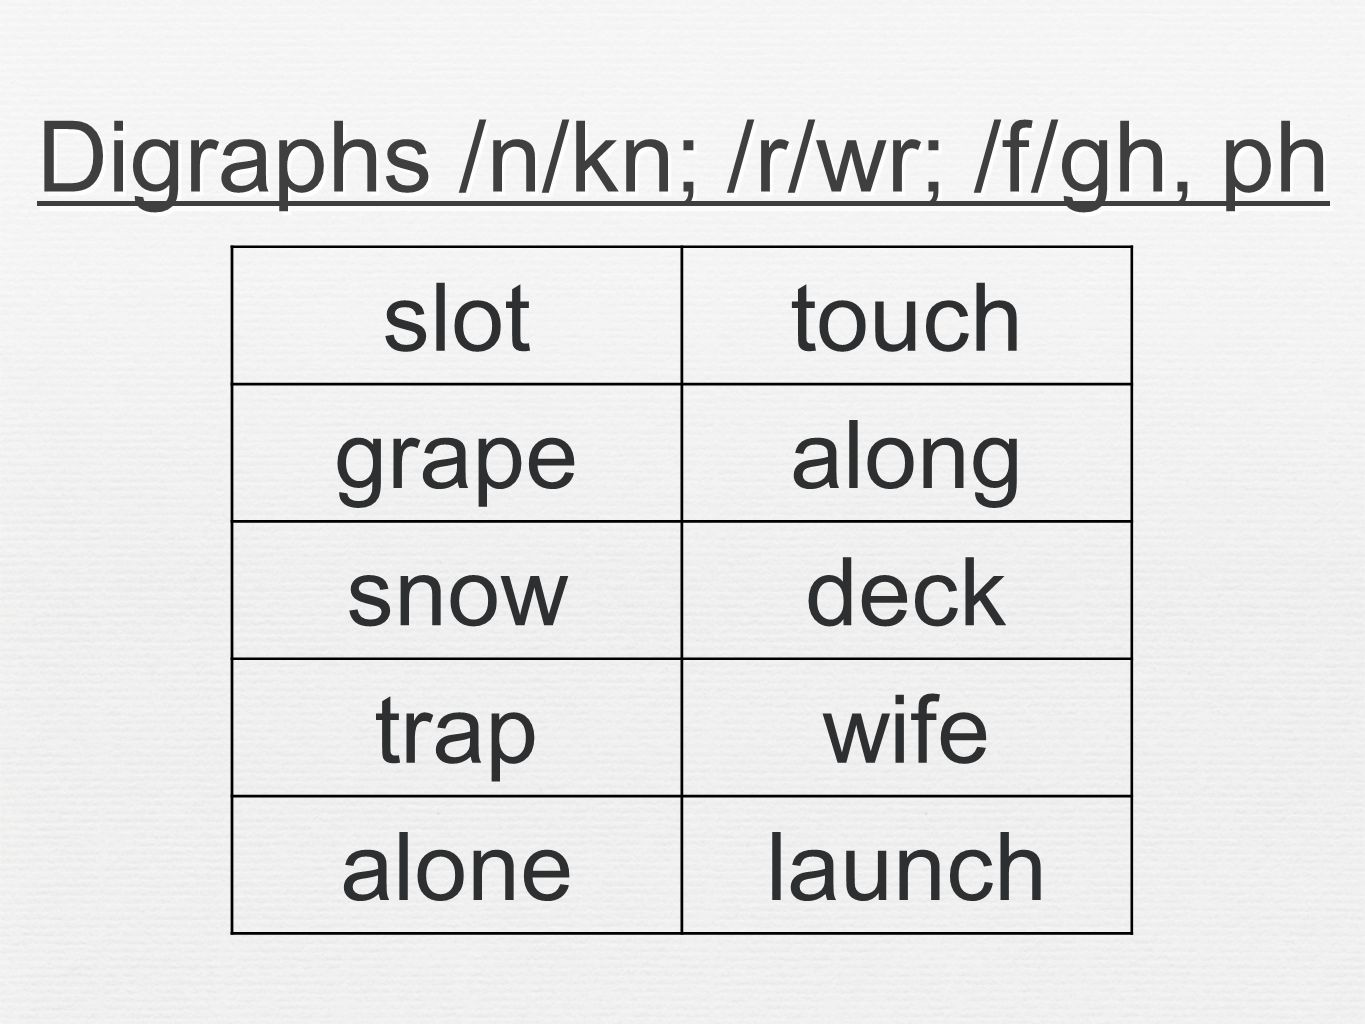 Digraphs /n/kn; /r/wr; /f/gh, ph slottouch grapealong snowdeck trapwife alonelaunch